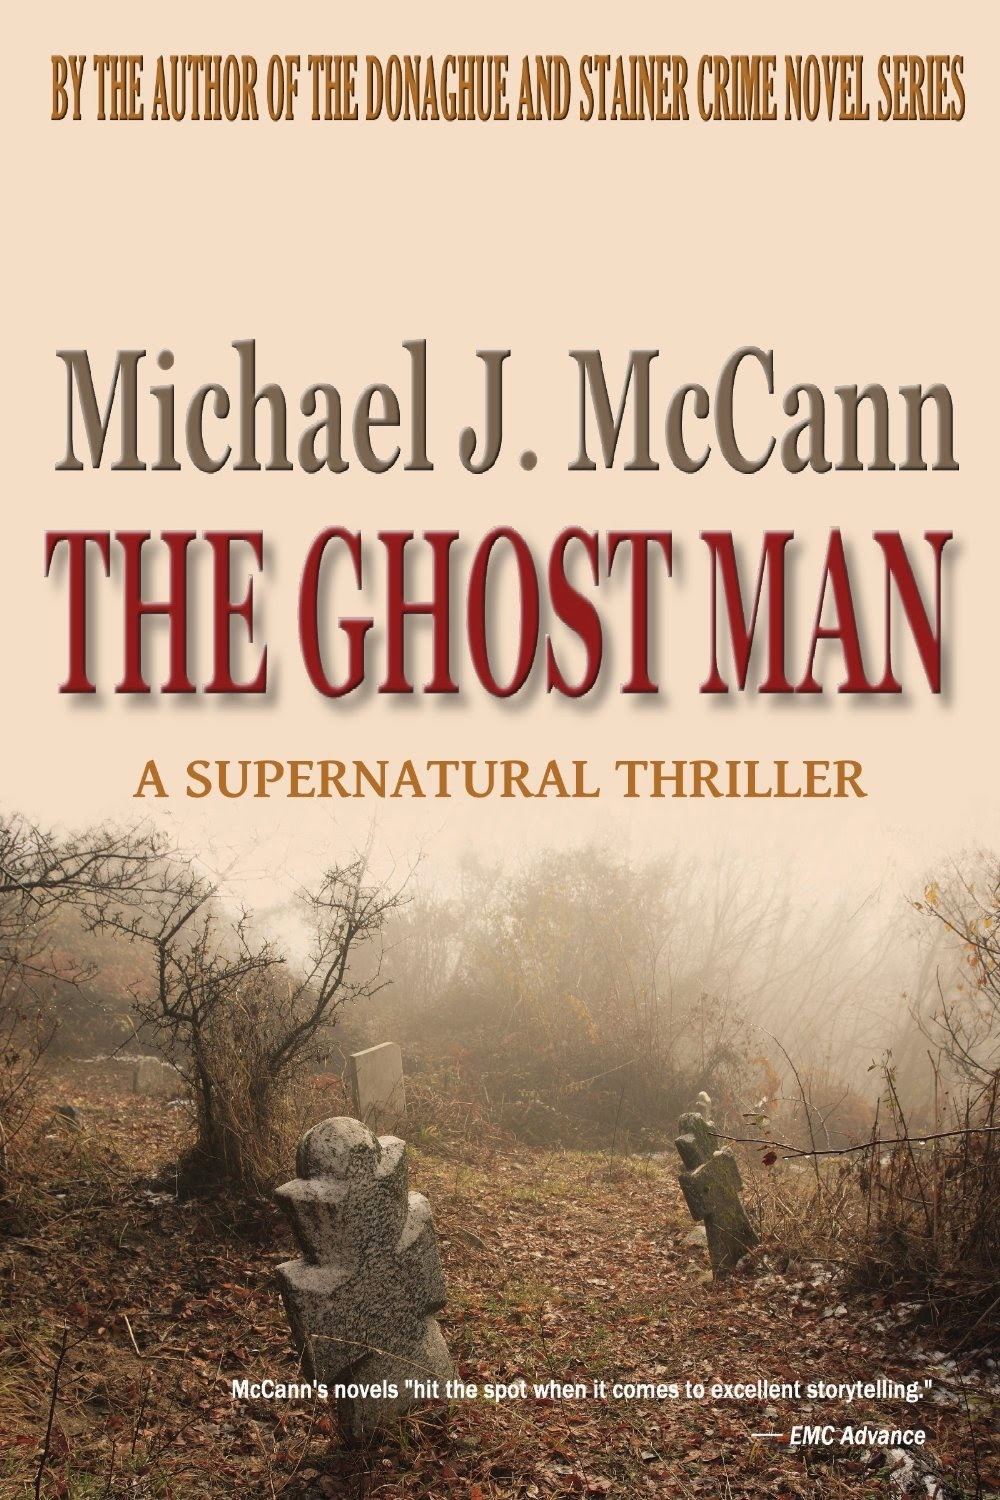 http://www.amazon.com/Ghost-Man-Michael-J-McCann-ebook/dp/B00BFKOHIK/ref=sr_1_1?s=books&ie=UTF8&qid=1422198377&sr=1-1&keywords=michael+j.+mccann+ghost+man